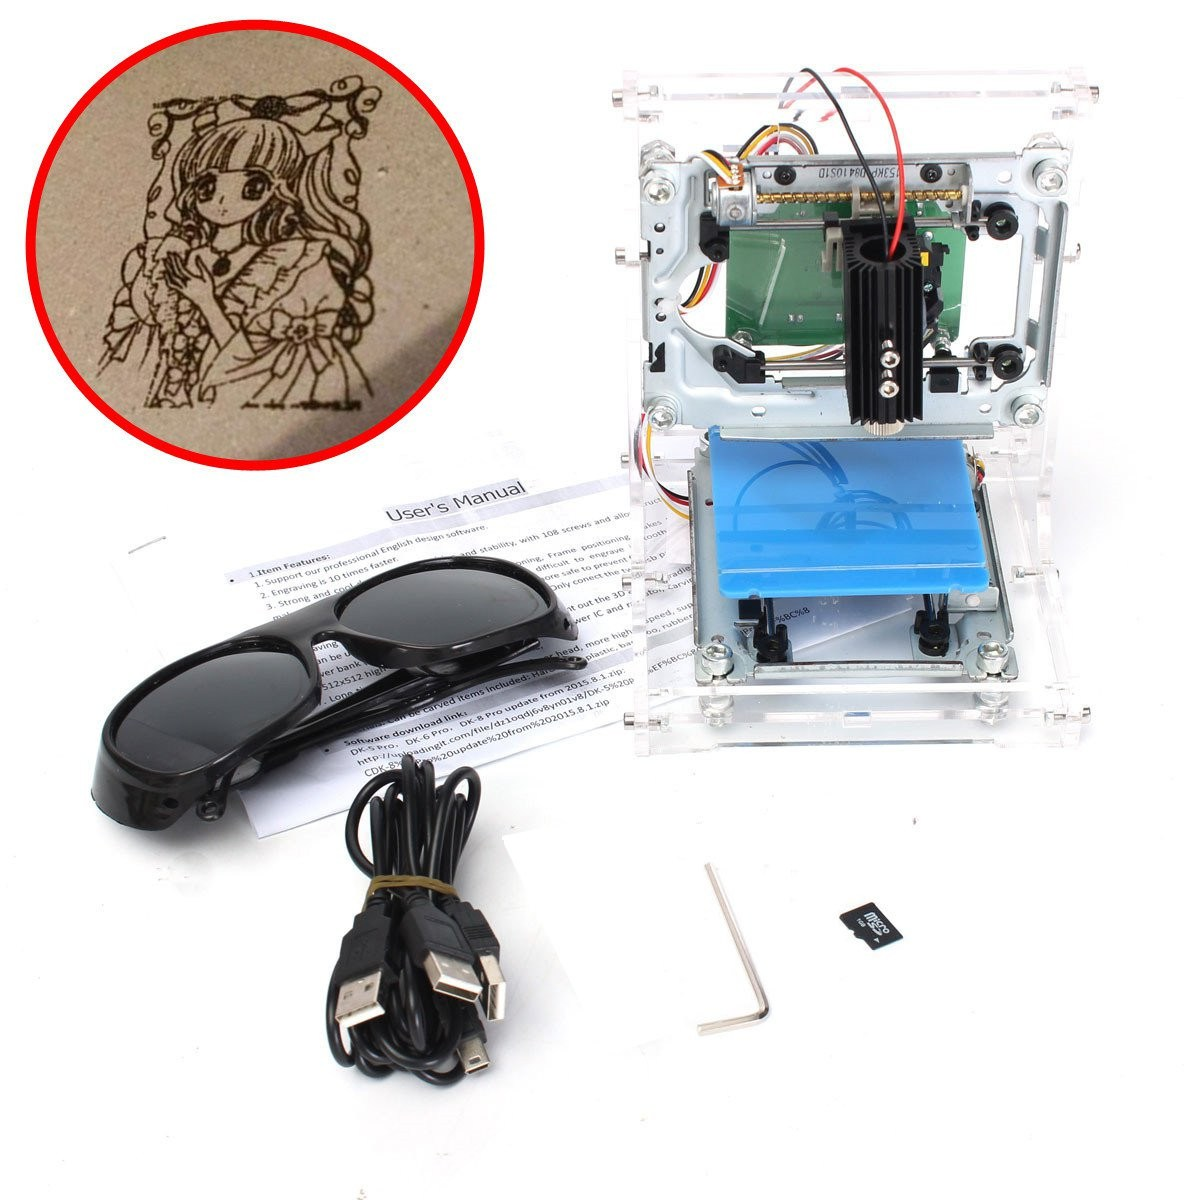 High Quality New Woodworking Engraving Machine  JZ-5 500mW USB DIY Laser Printer Engraver Laser Engraving Machine 38 x 38mm high quality photo 2d 3d crystal mugs ring shoe design laser engraving machine price for portrait printing